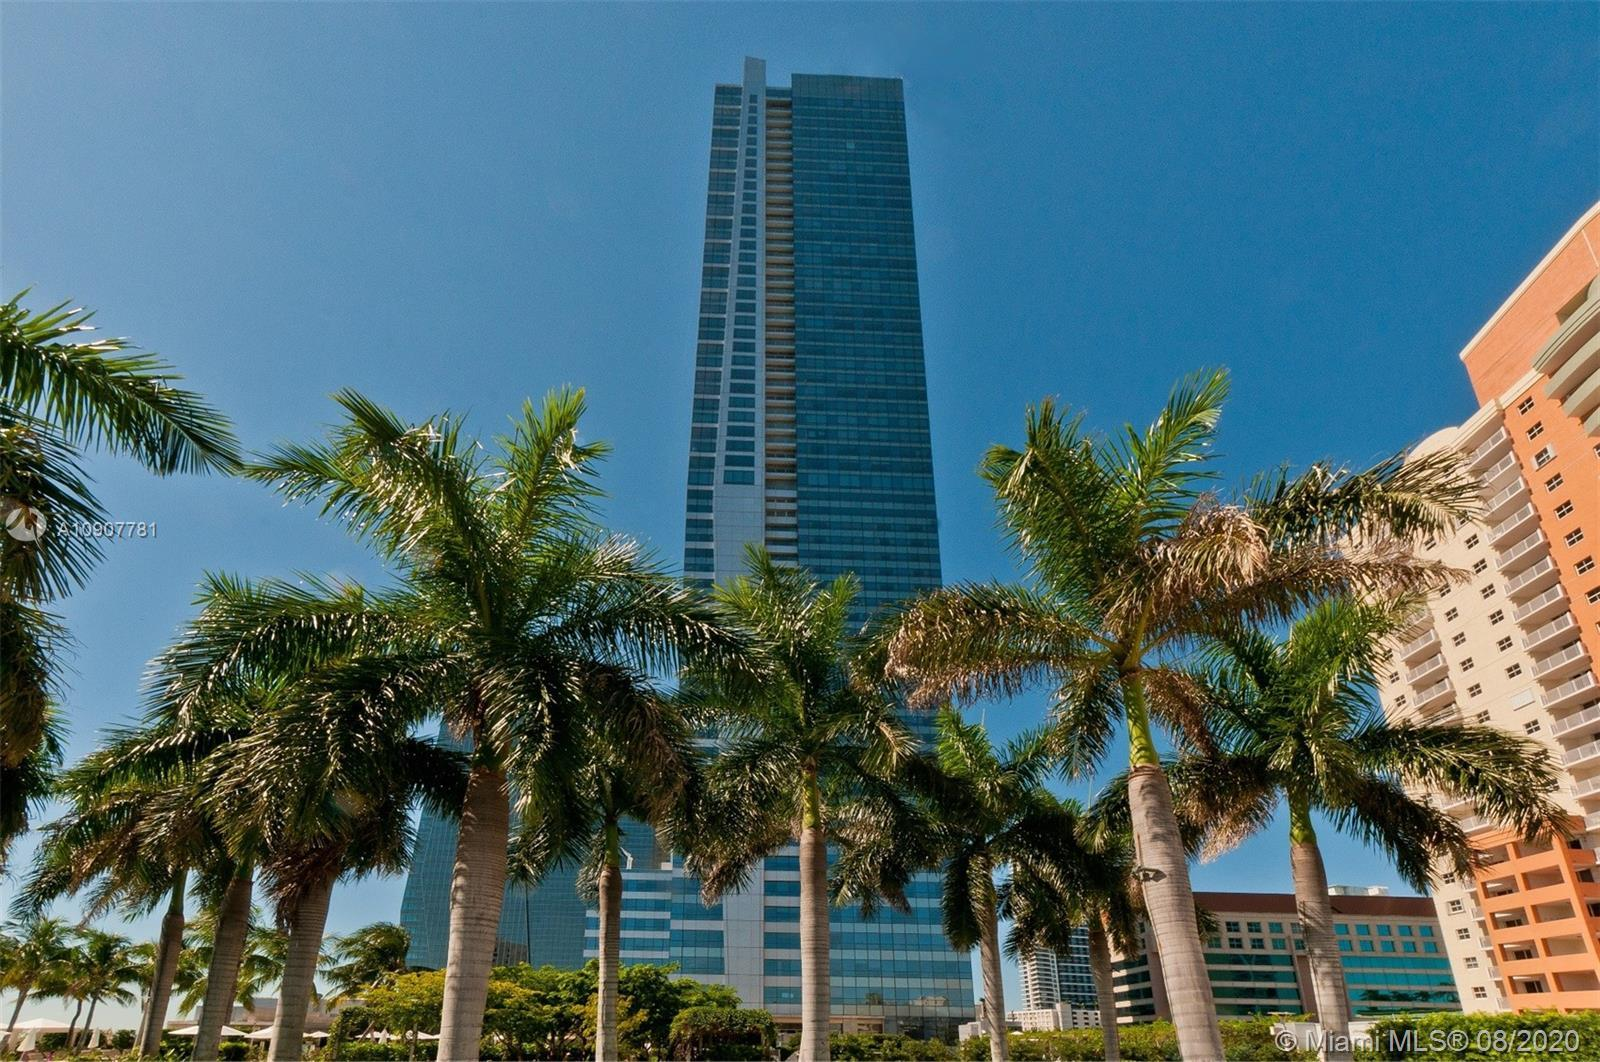 FIVE STAR LIVING AT THE FOUR SEASONS RESIDENCES MIAMI. THIS MAGNIFICENT CORNER RESIDENCE LOCATED ON